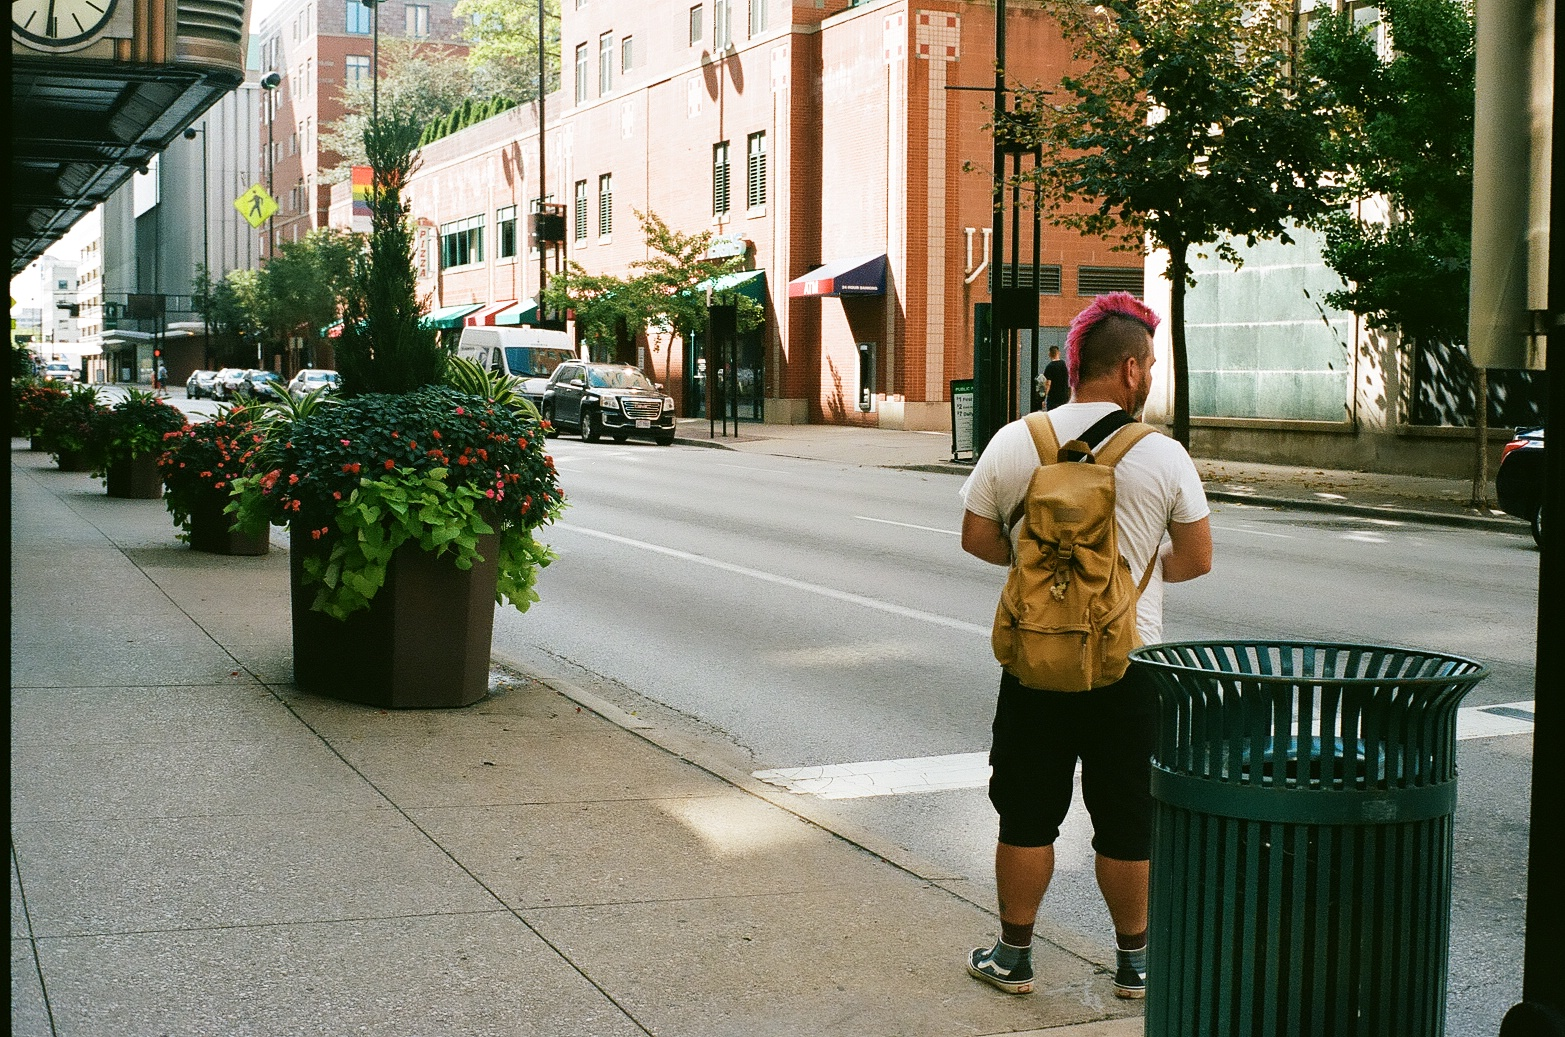 Shawn, scoping out his next shot in Cincinnati. (Photo by Sam Warner)